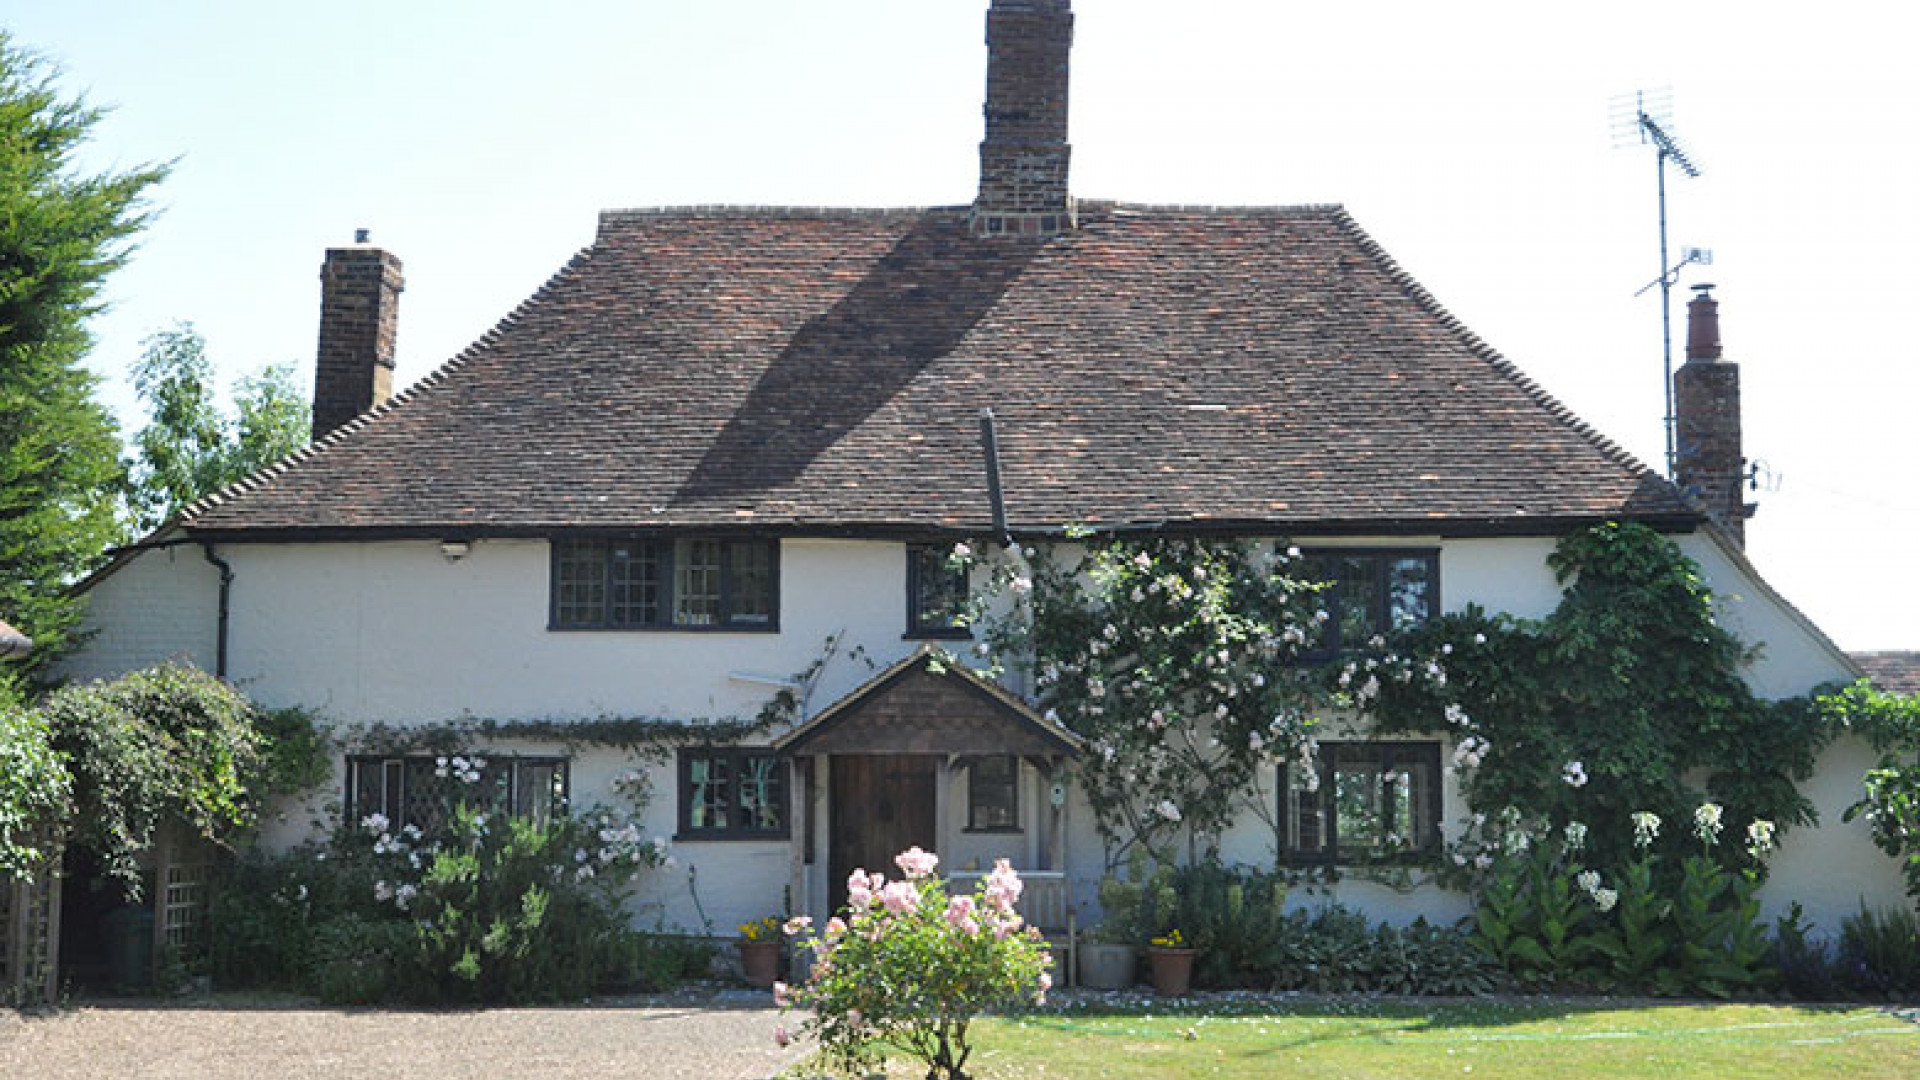 UK163_The_Weald_House_113759_3MB_240713